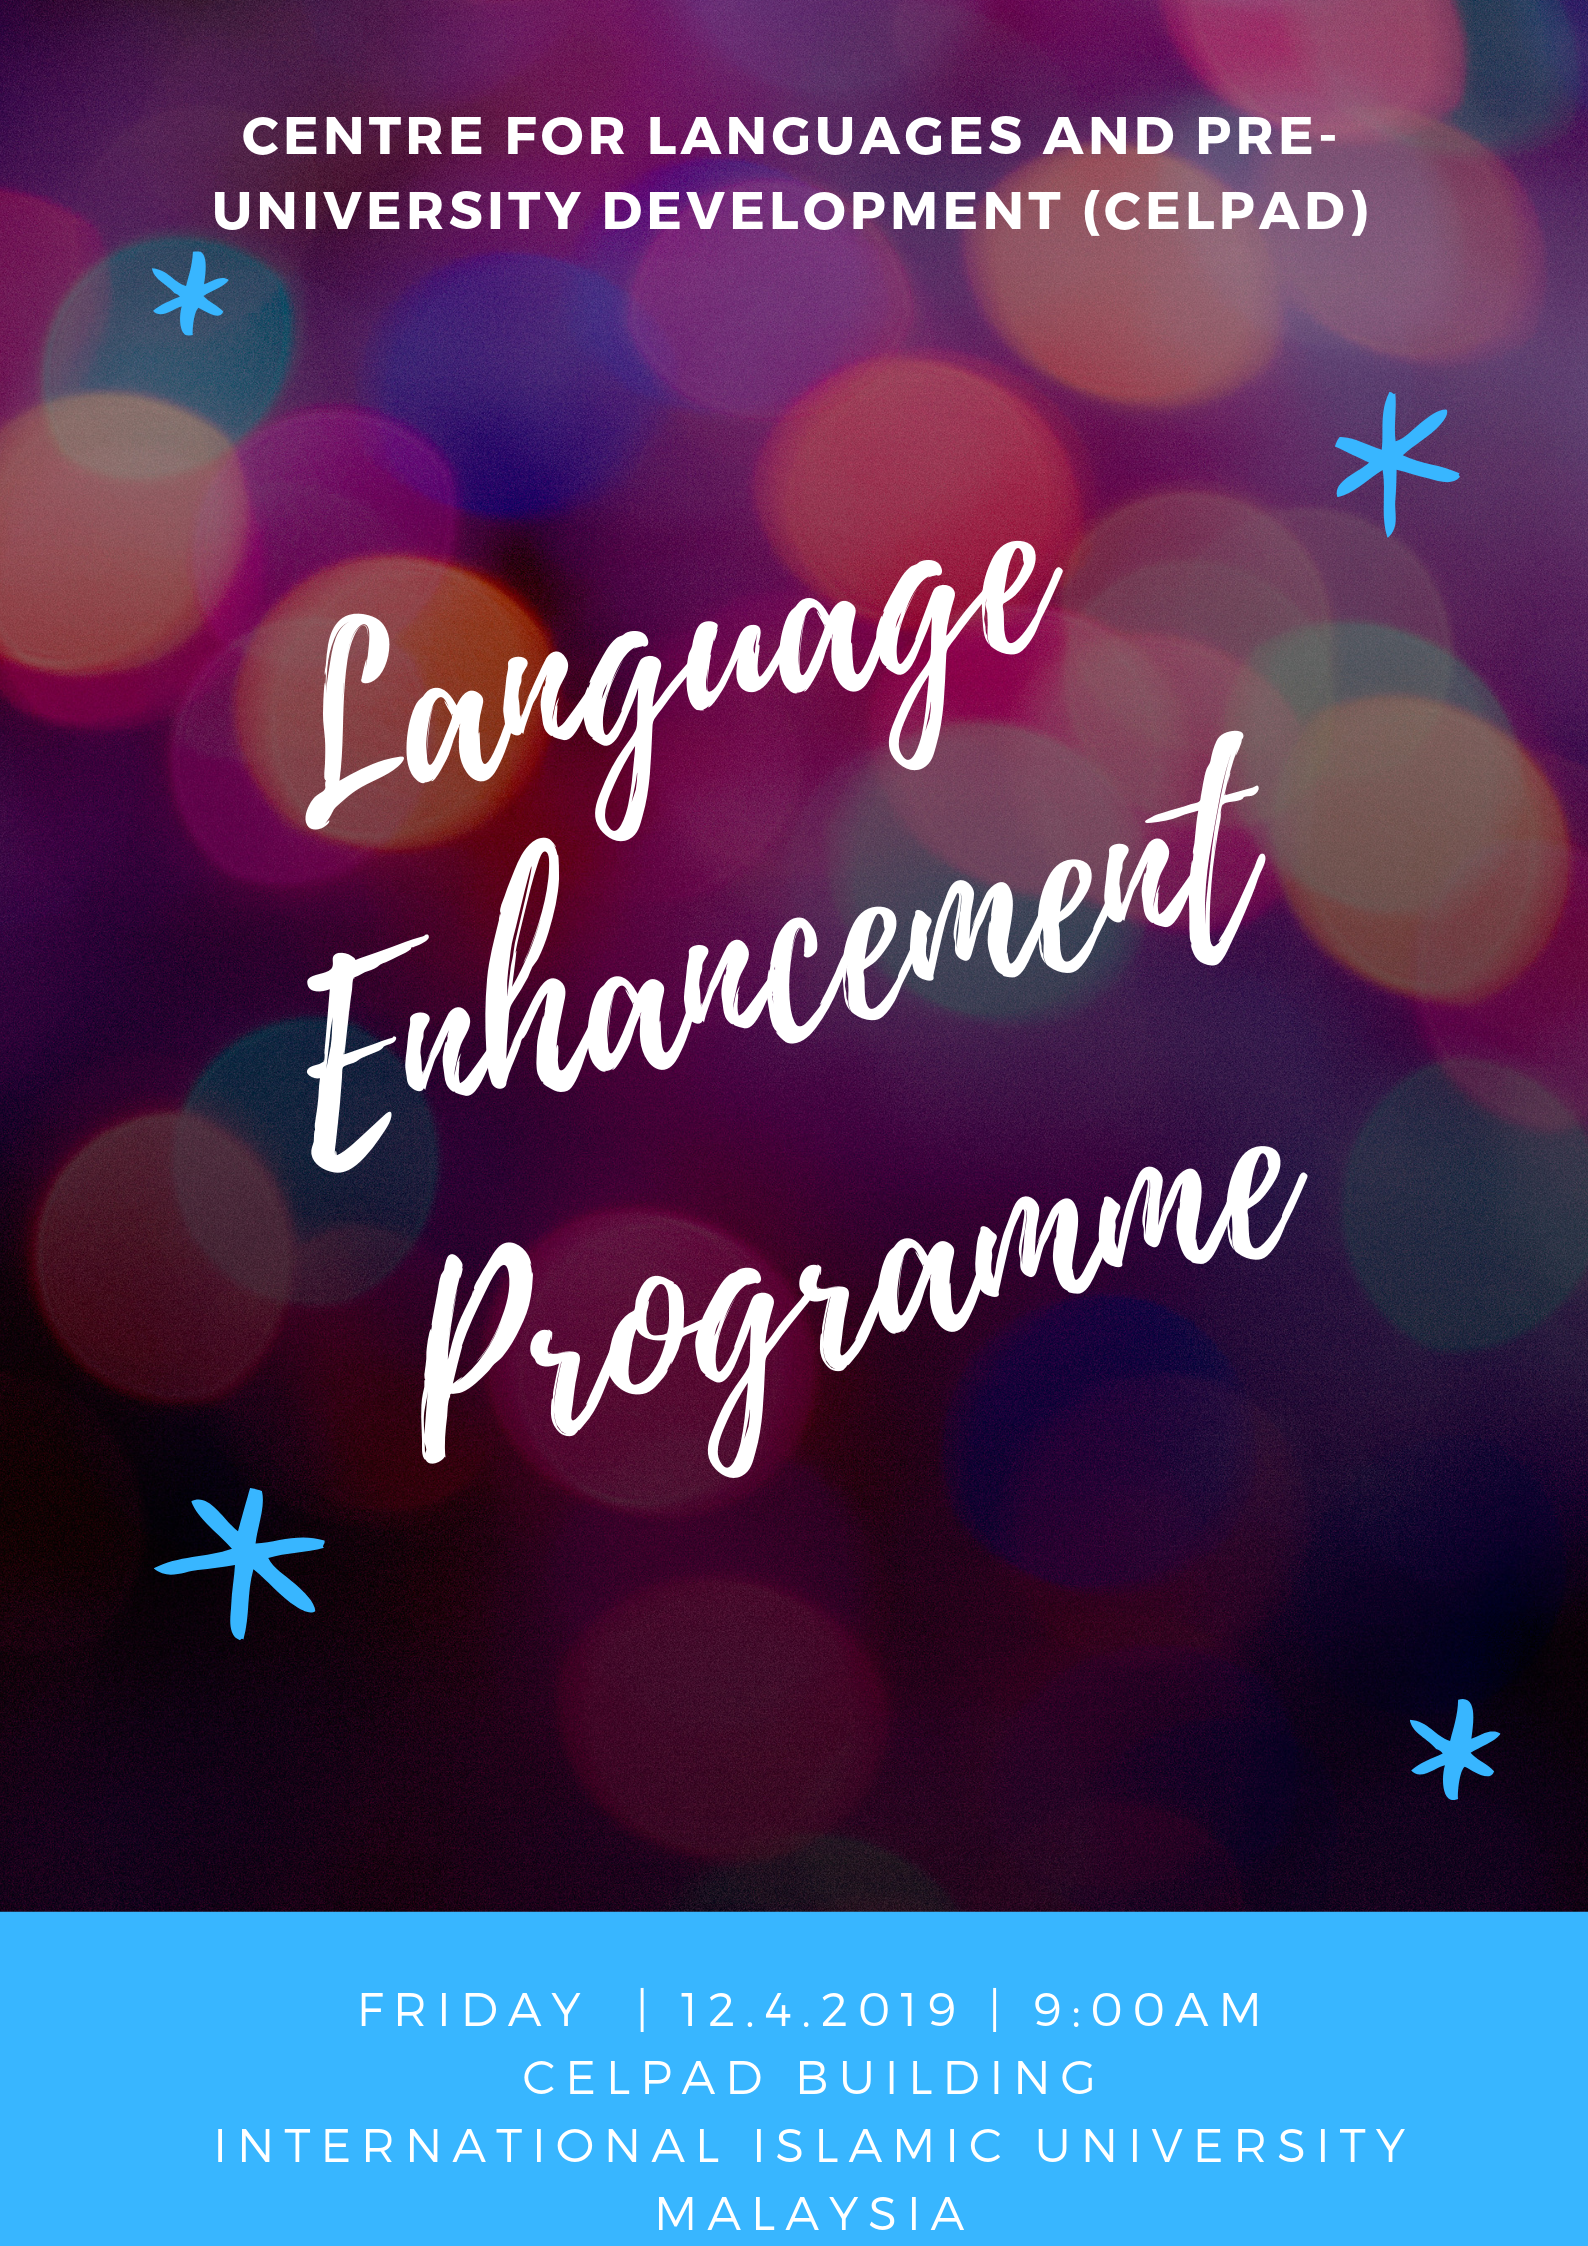 Language Enhancement Programme 2019